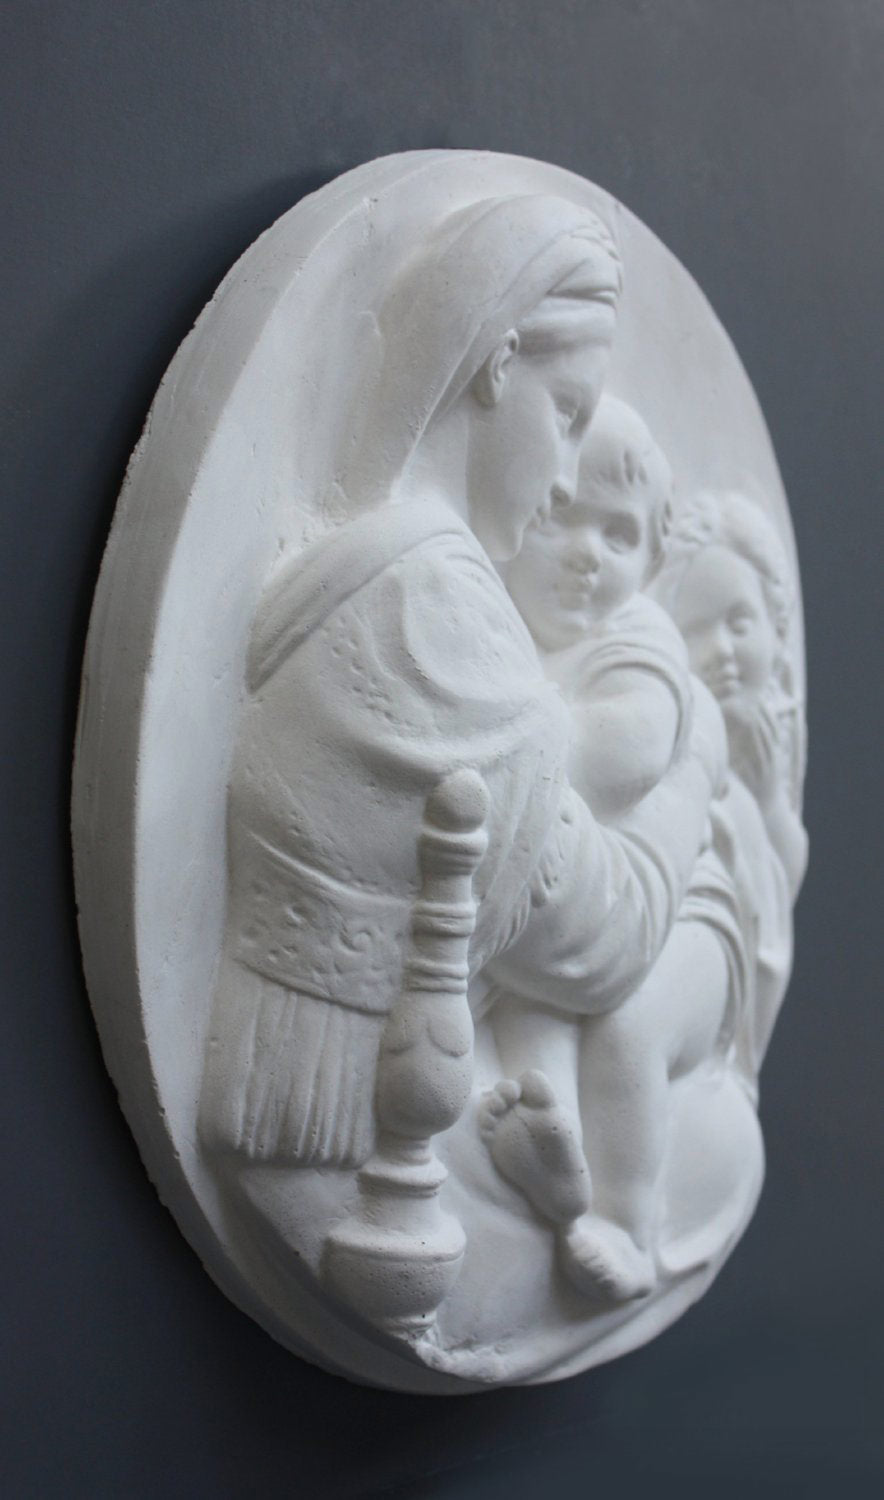 three-quarter photo of relief plaster cast featuring the Madonna, Child, and St. John and hanging on a dark-colored wall